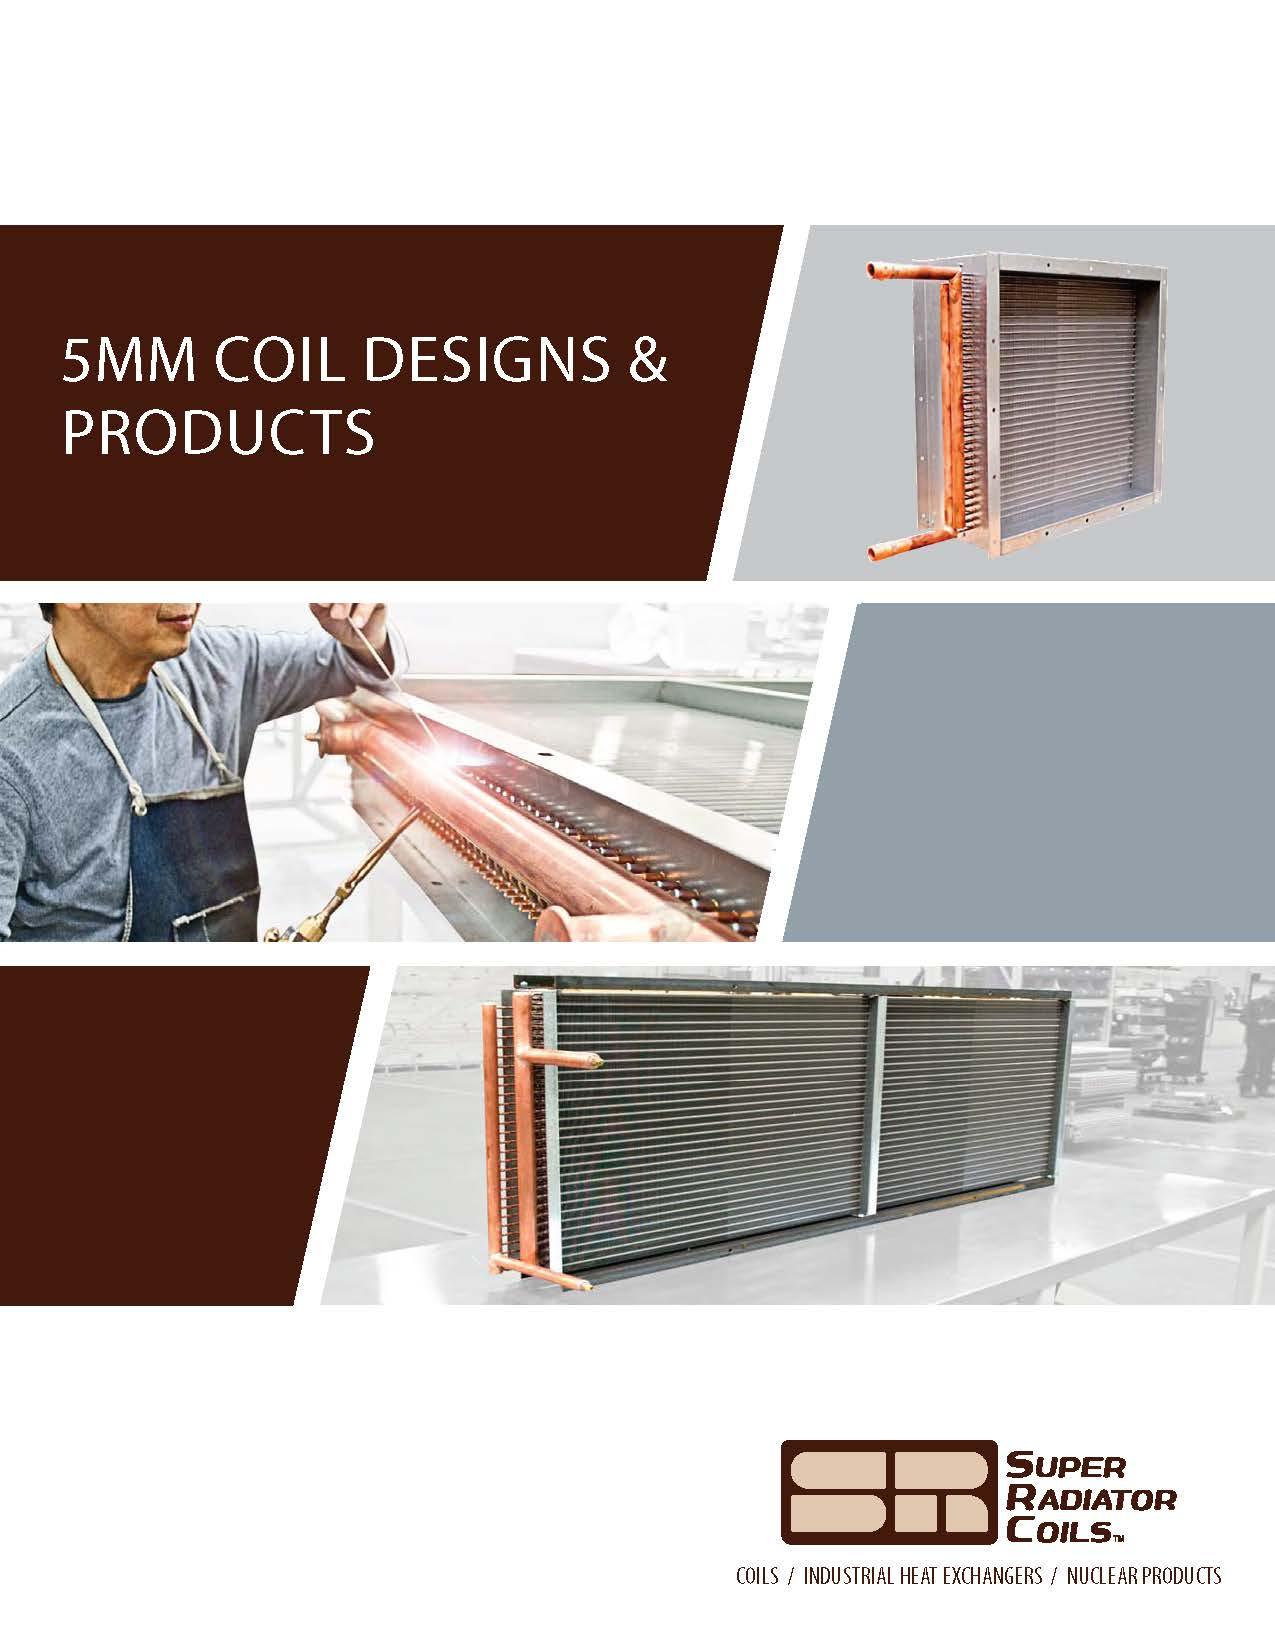 5MM Coil Designs & Products Brochure